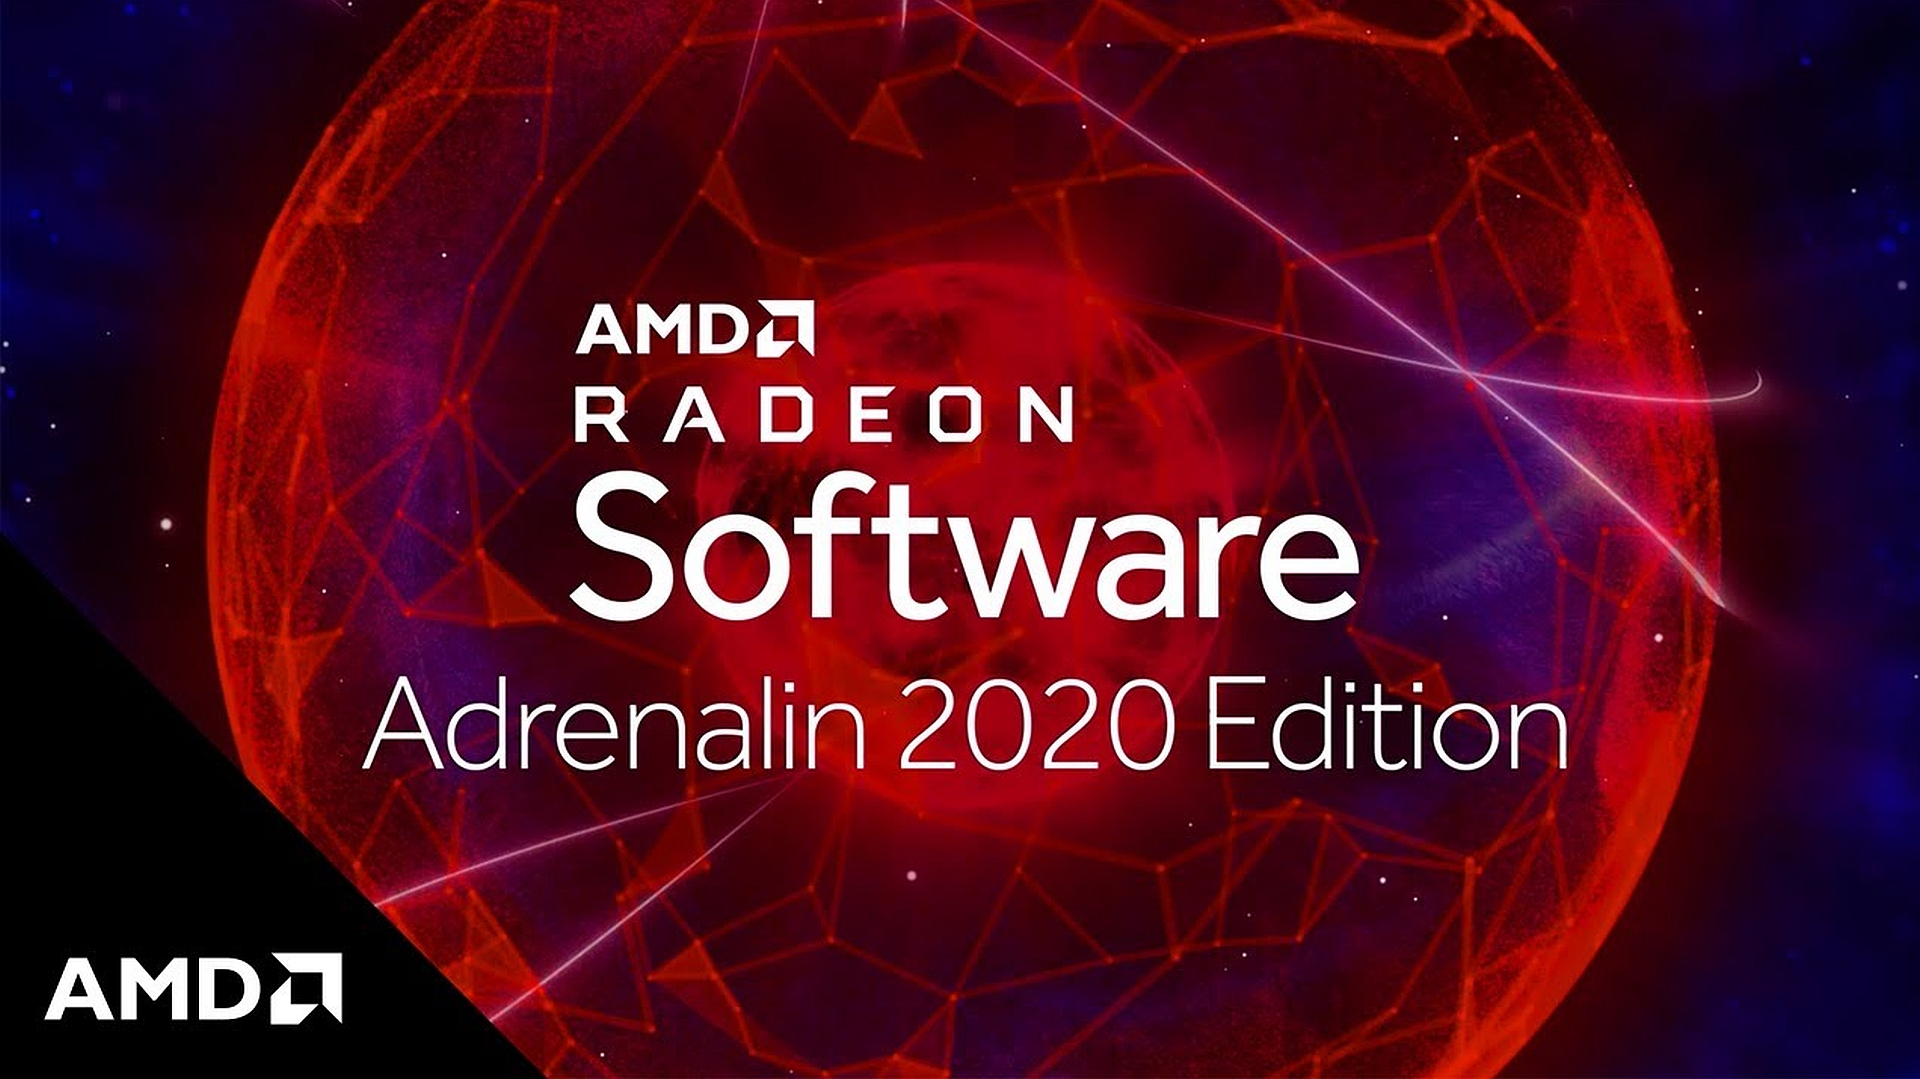 New Amd Radeon Adrenalin 20 1 4 Driver Is Optimized For Warcraft Iii Reforged And Journey To The Savage Planet